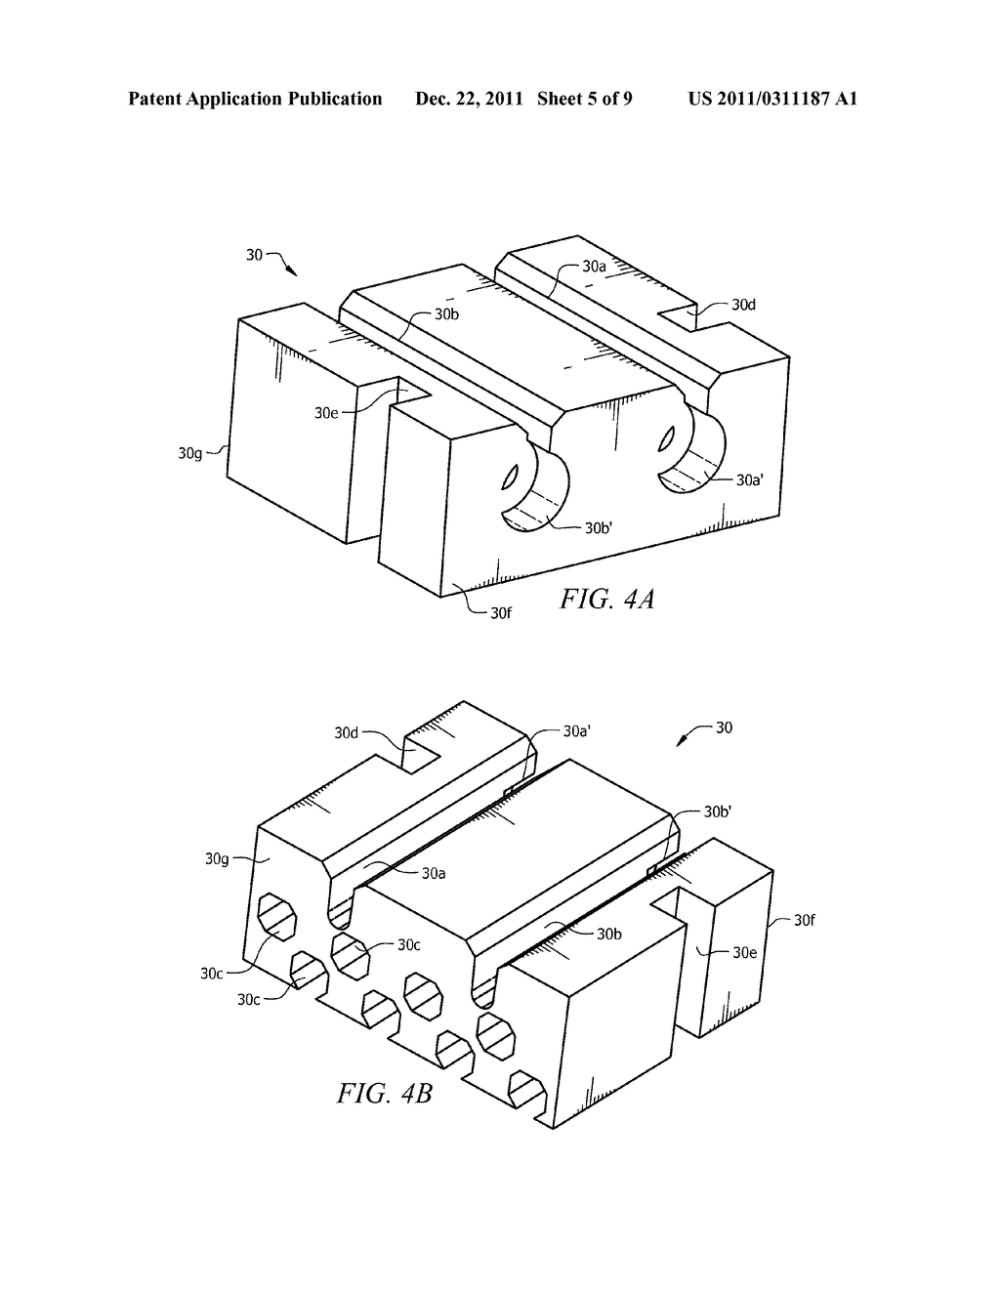 medium resolution of hybrid 8p8c rj 45 modular plug configured with both optical and electrical connections for providing both optical and electrical communications capabilities